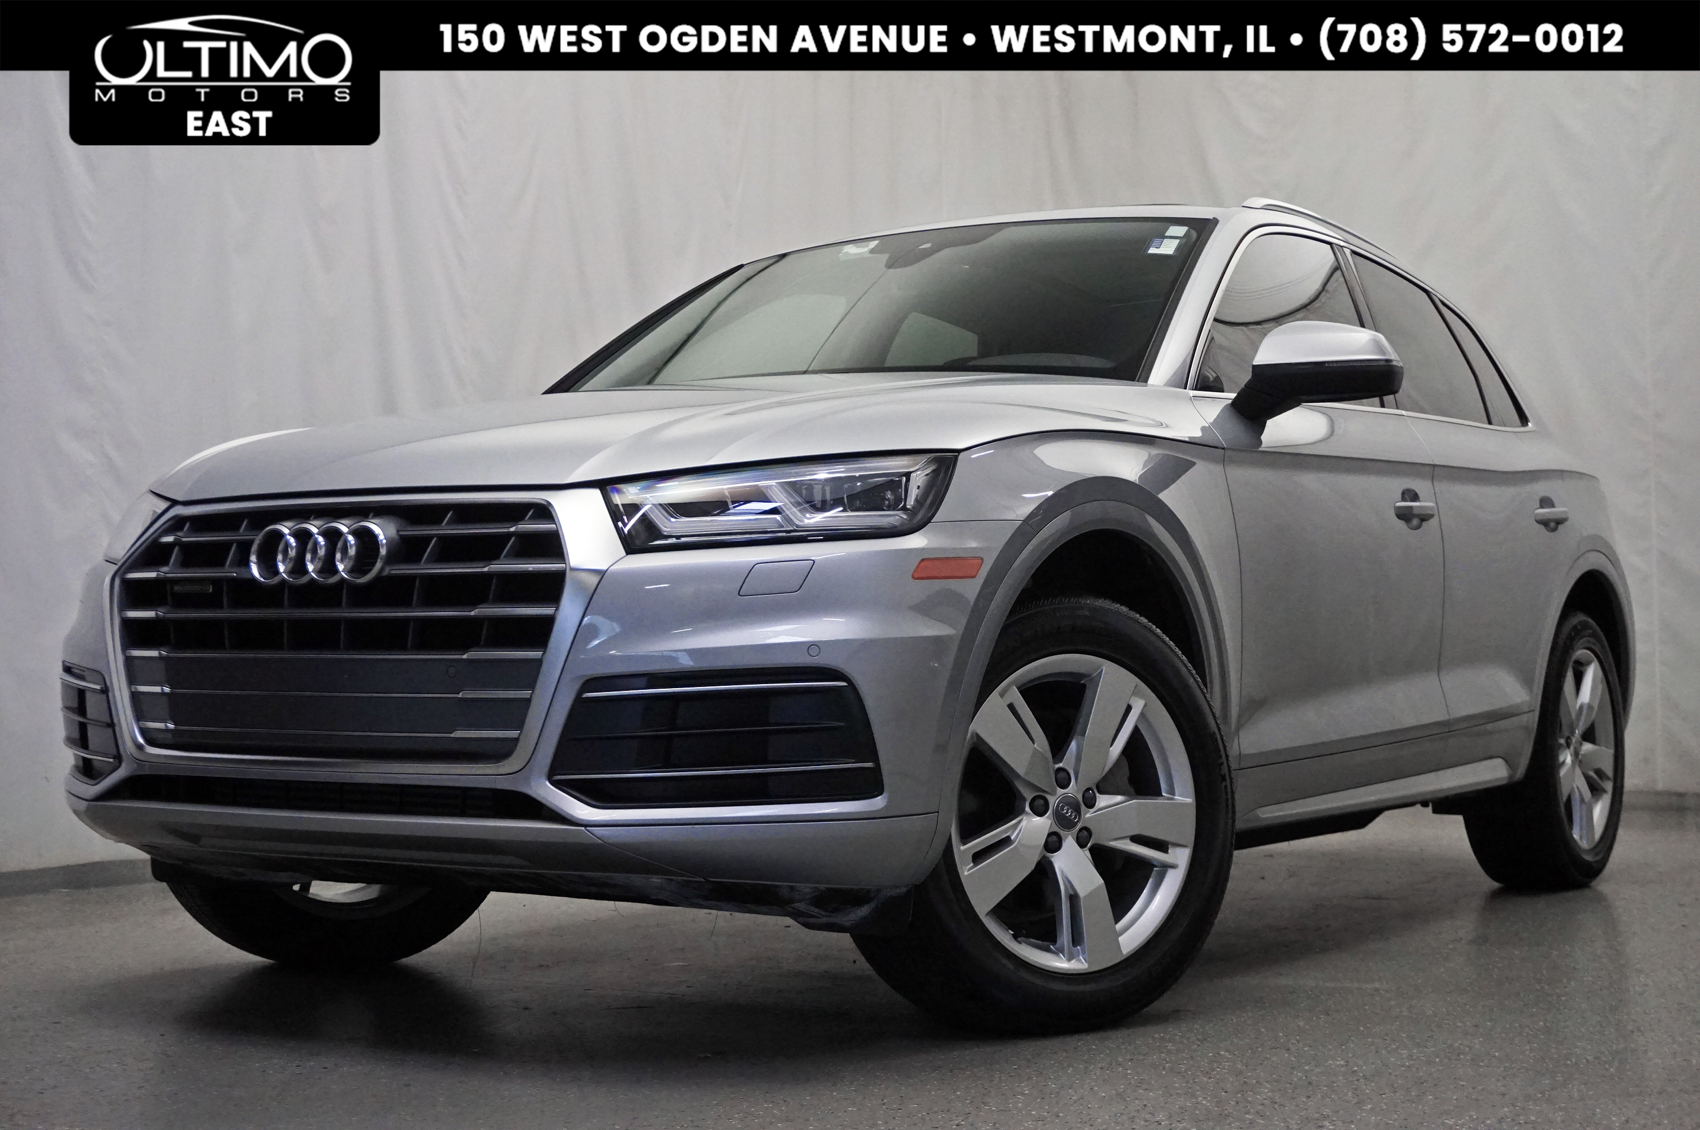 Pre-Owned 2018 Audi Q5 Premium Plus Cold Weather Pkg, 19-Inch Wheels, Navigation Pkg